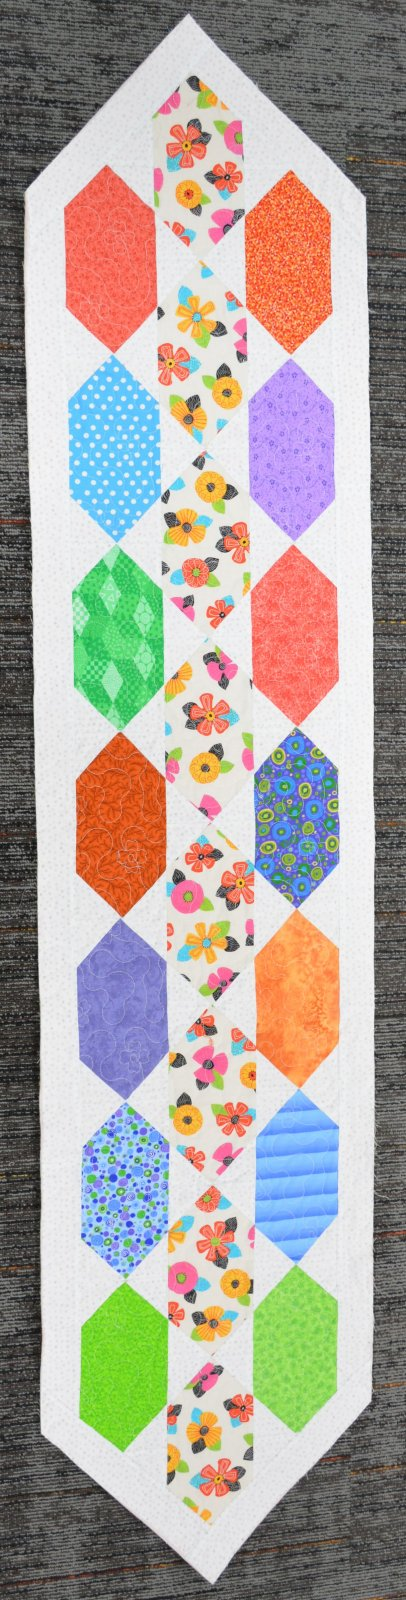 Runway Table Runner Kit -- Jamboree